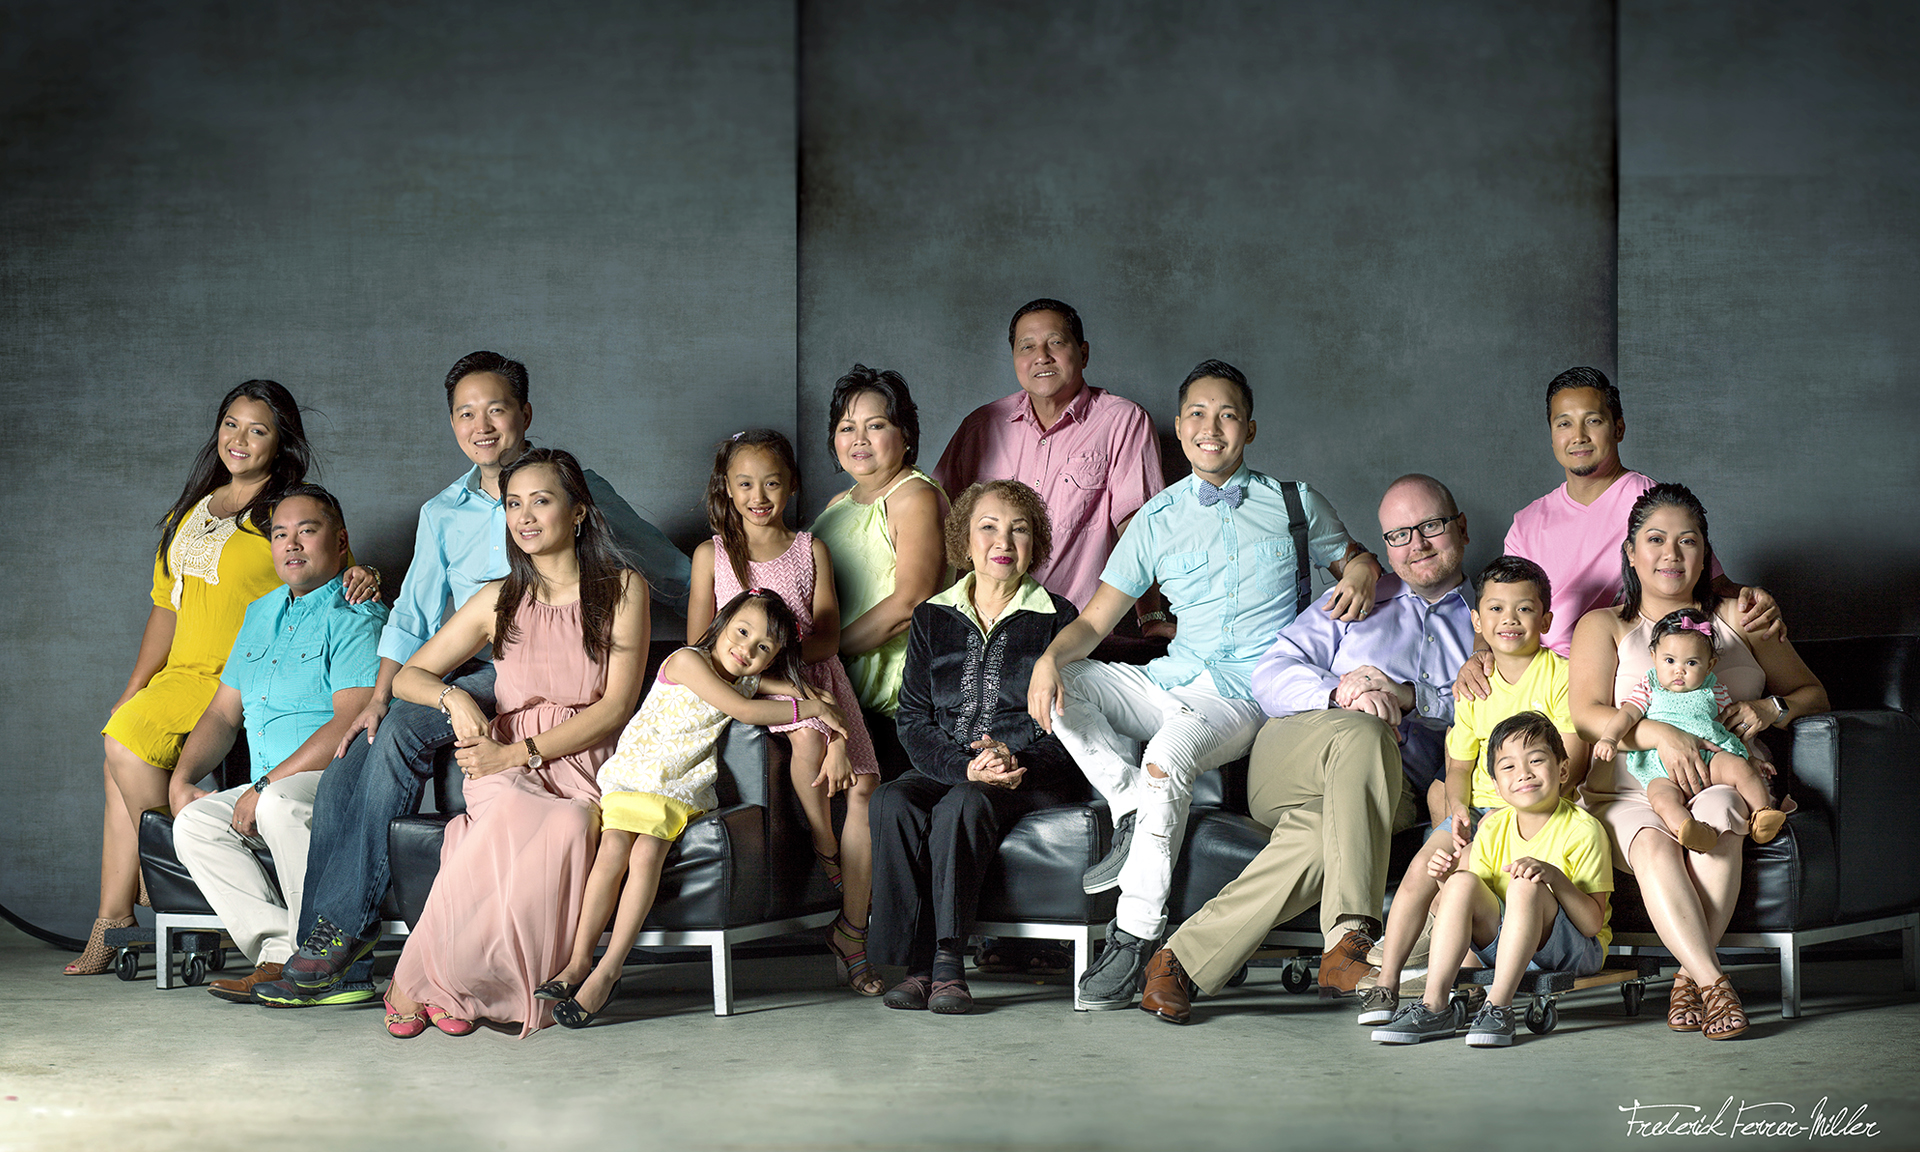 Ferrer Family Photo Composite